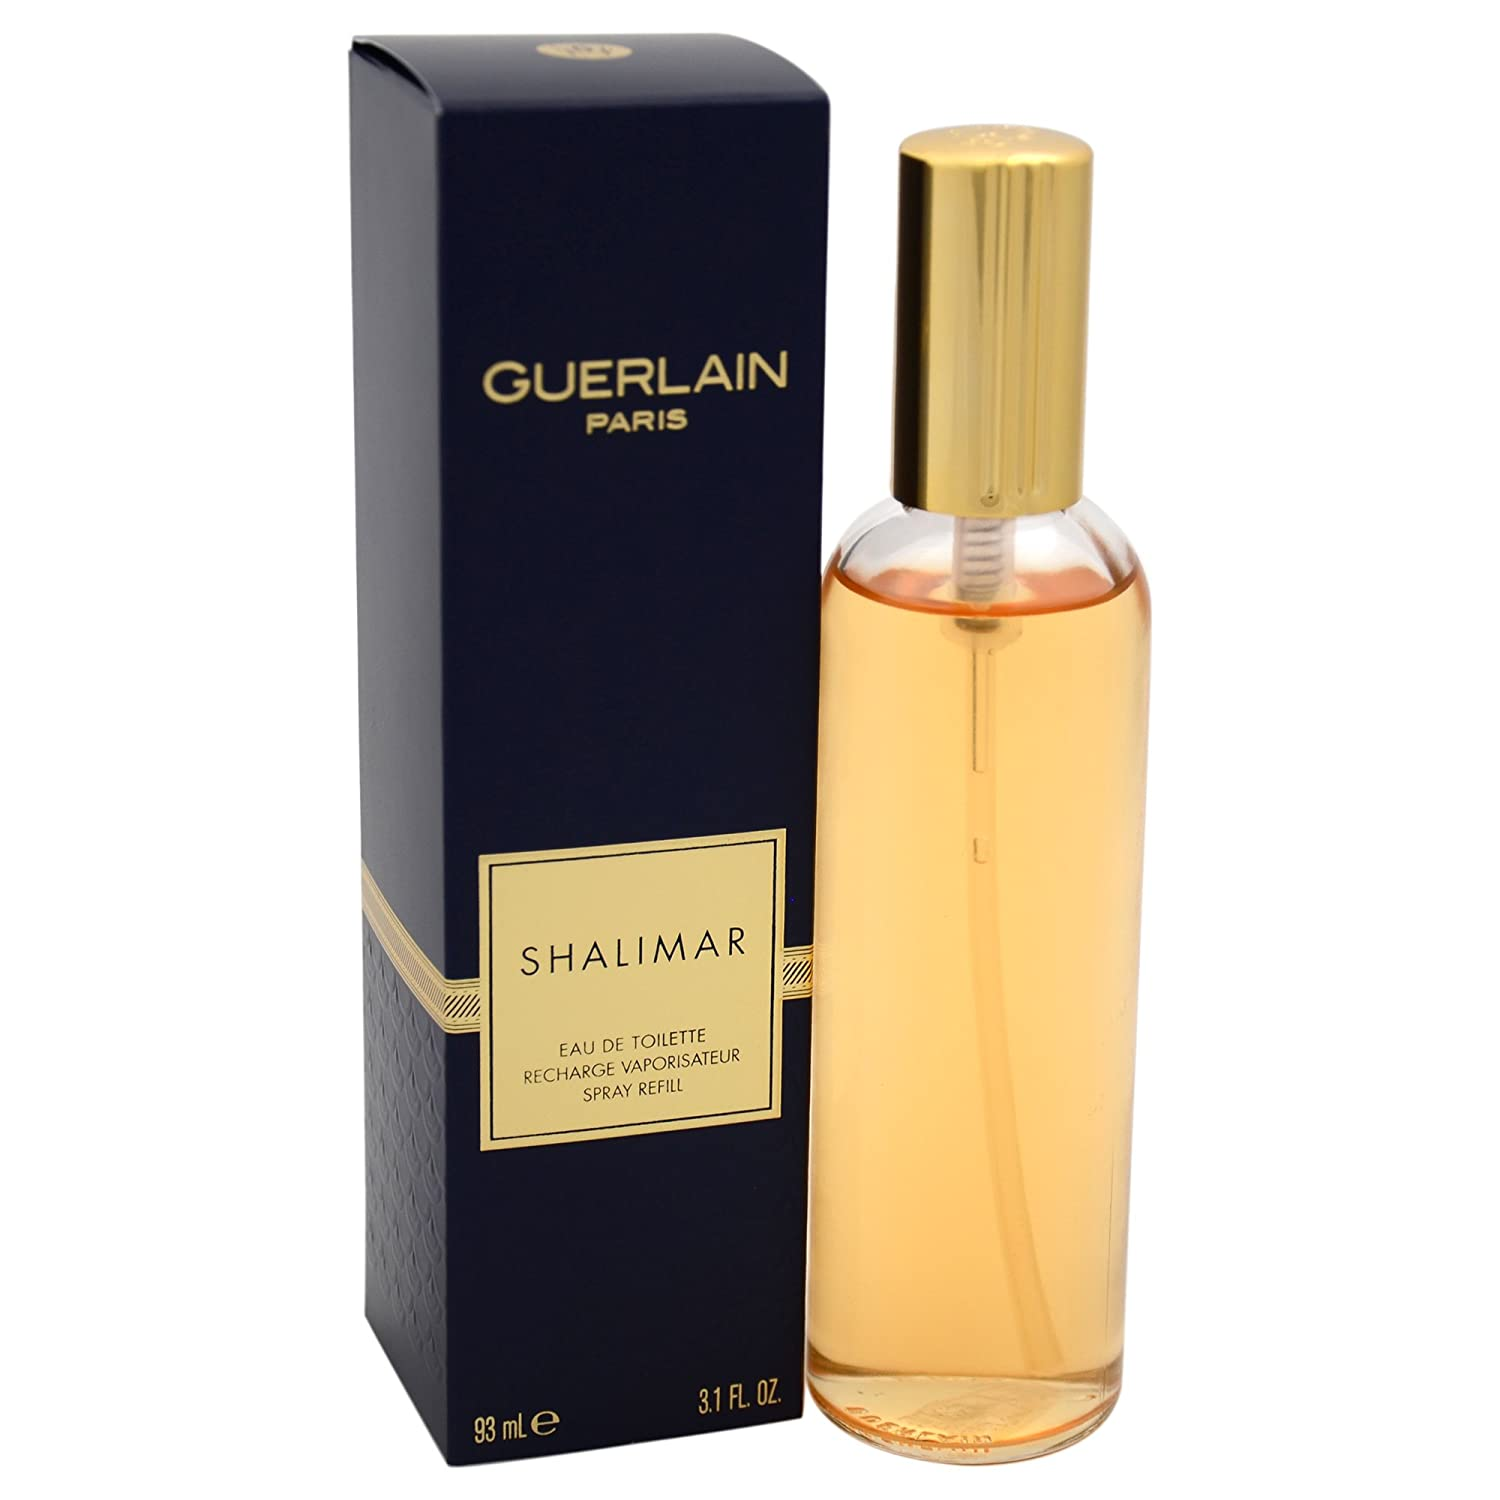 Refill By Oz 93 Ml Guerlain 3 Women Toilette 1 Shalimar For De Spray Eau rxtsCQdh